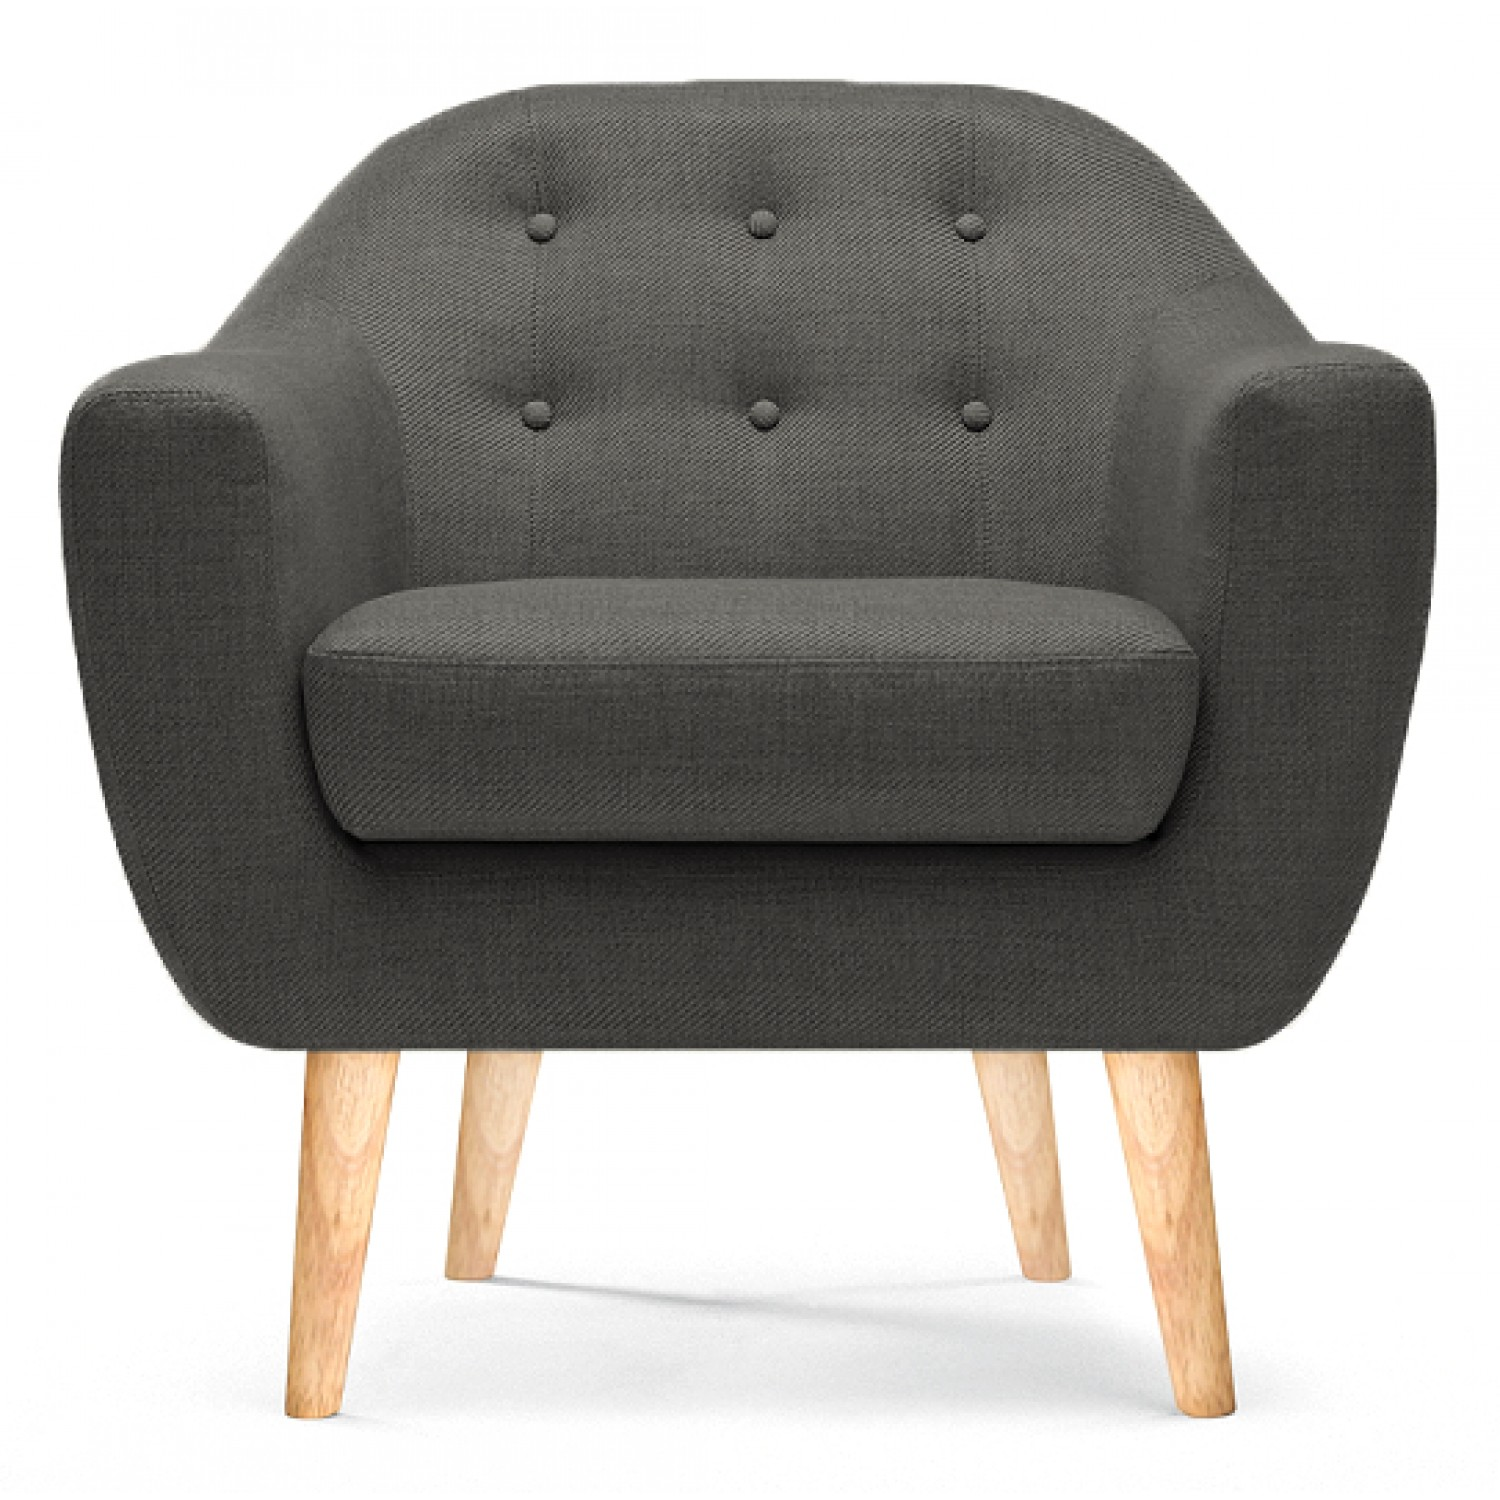 fauteuil design scandinave pojet site fran ais de vente d 39 objets de. Black Bedroom Furniture Sets. Home Design Ideas